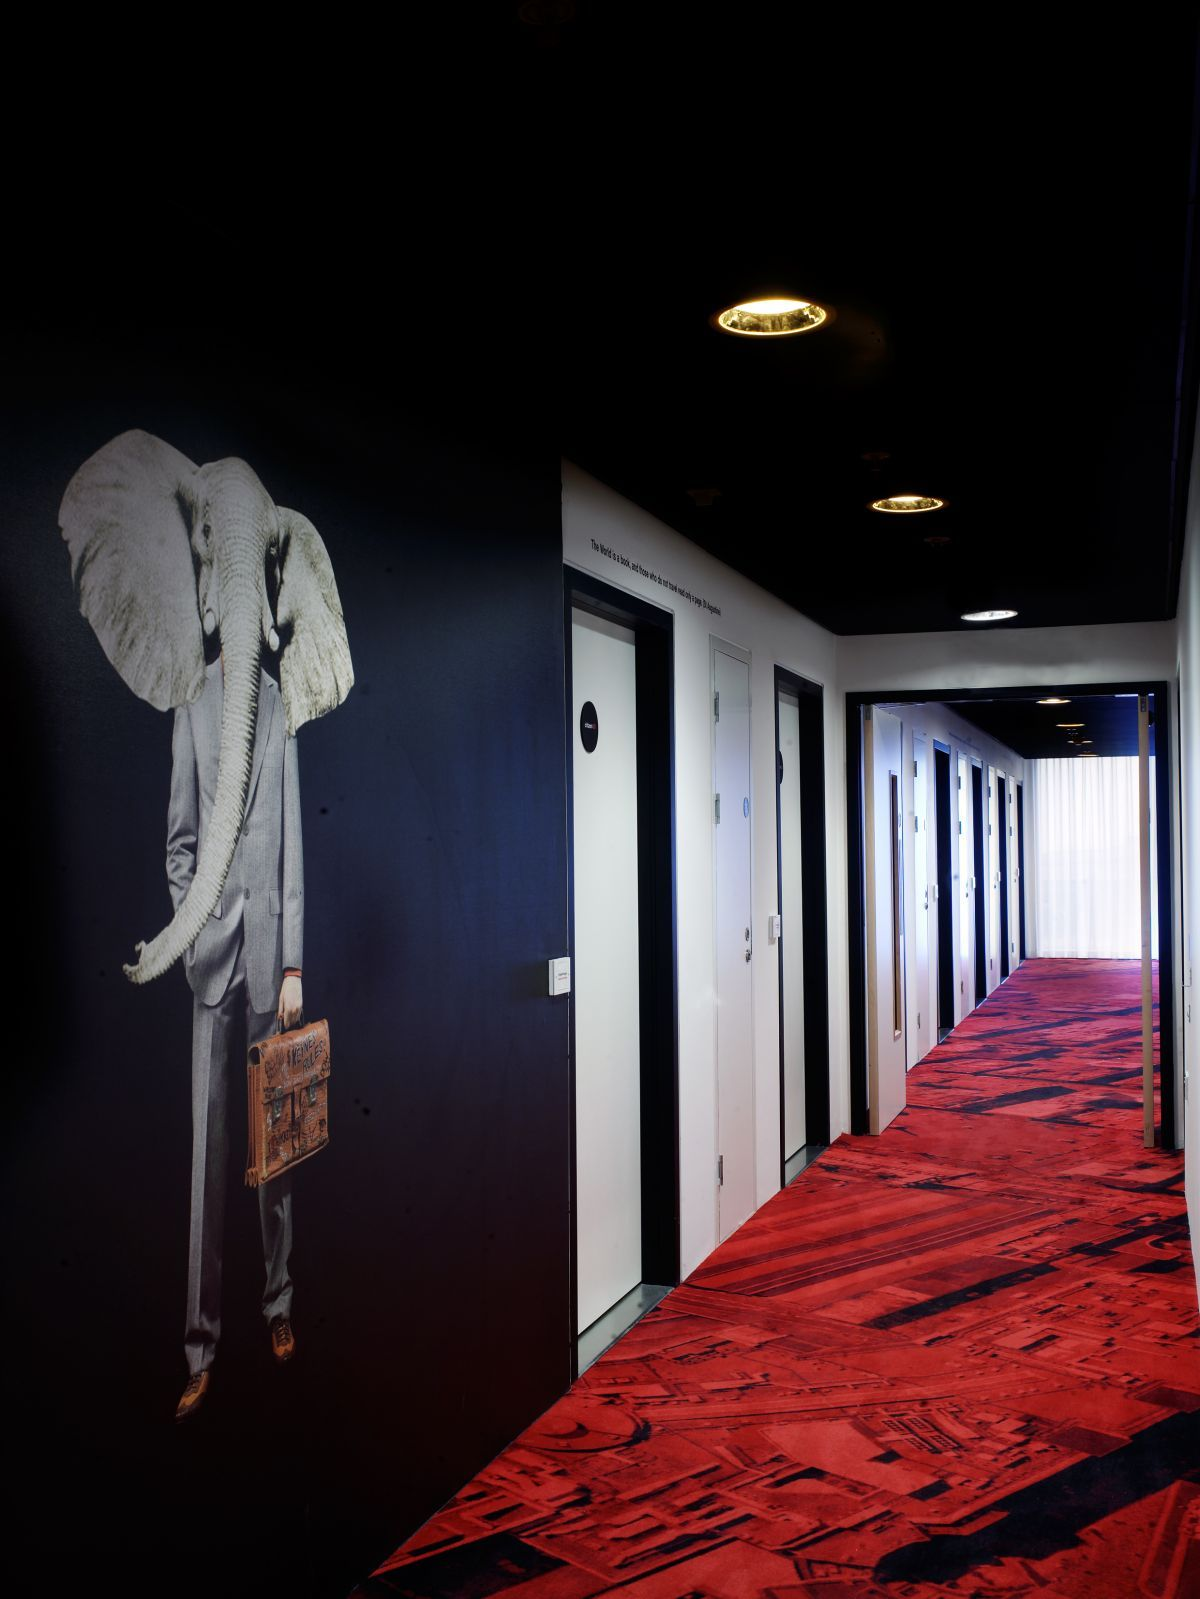 Interior, Hallway With Black Wall And Red Flooring: Awesome ...